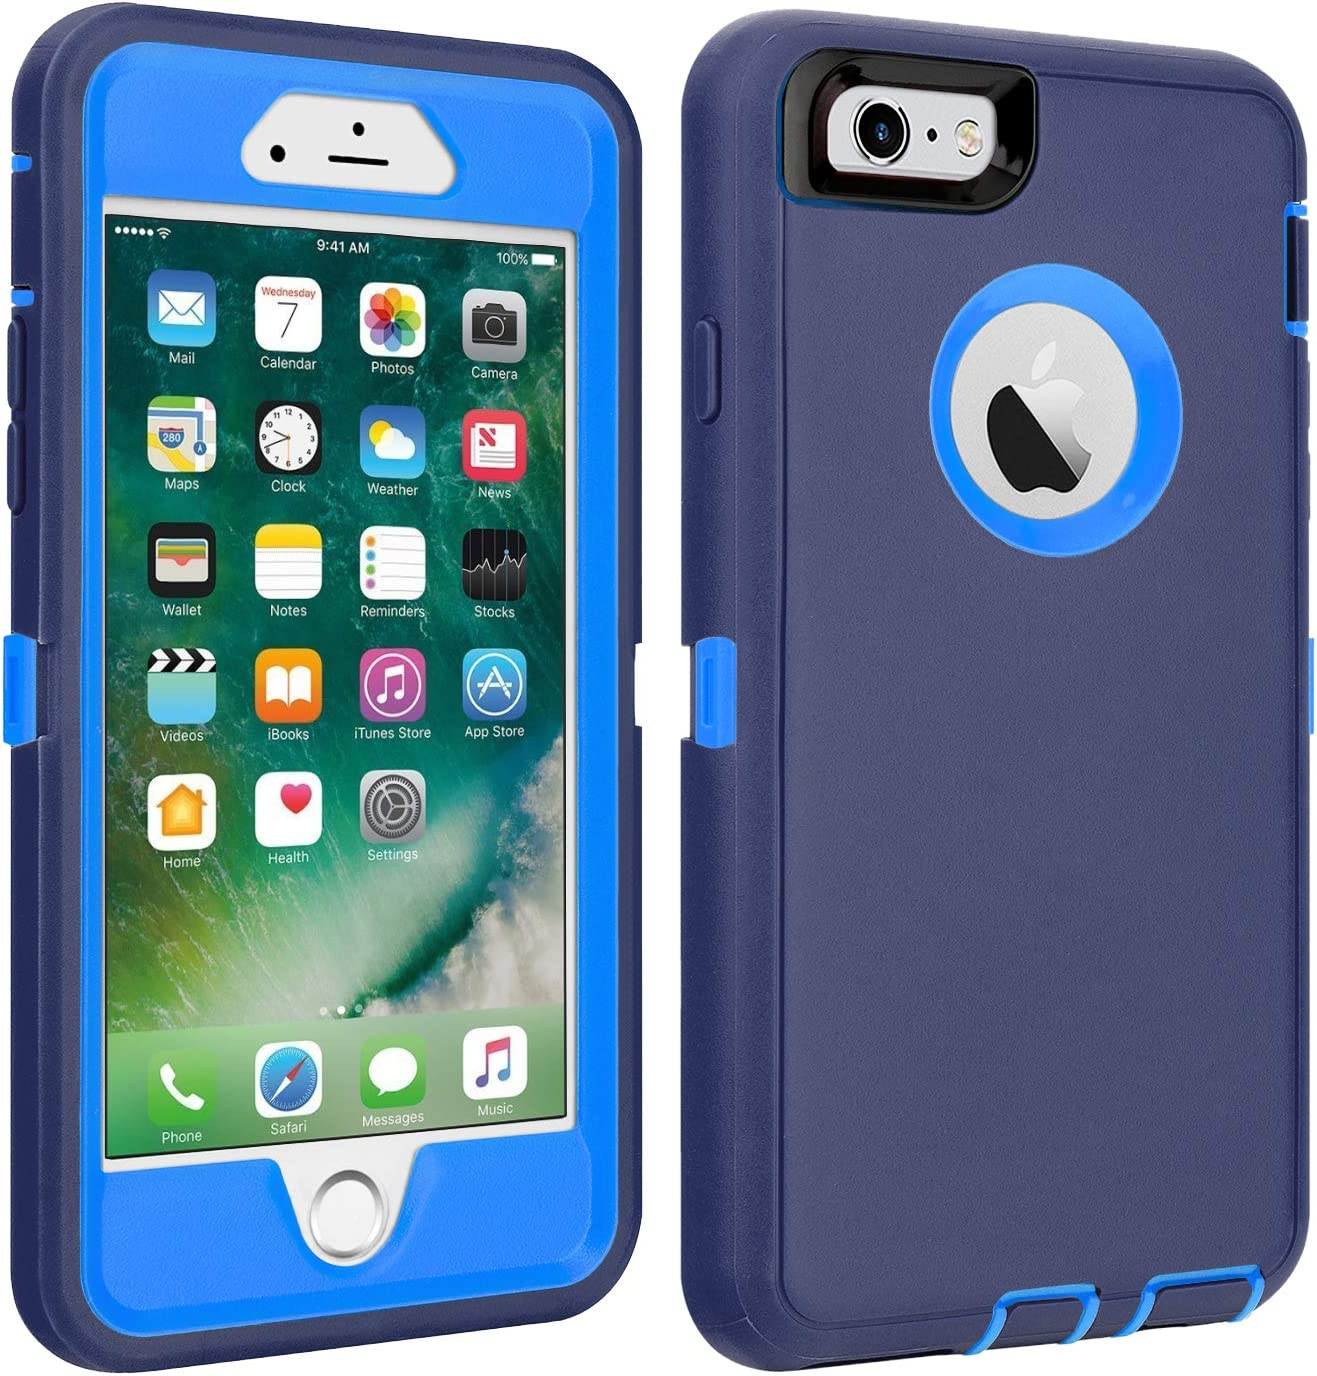 """iPhone 6/6S Case Shockproof High Impact Tough Rubber Rugged Hybrid Case Silicone Triple Protective Anti-Shock Shatter-Resistant Mobile Phone Case for iPhone 6/6S 4.7""""(Navy Blue)"""